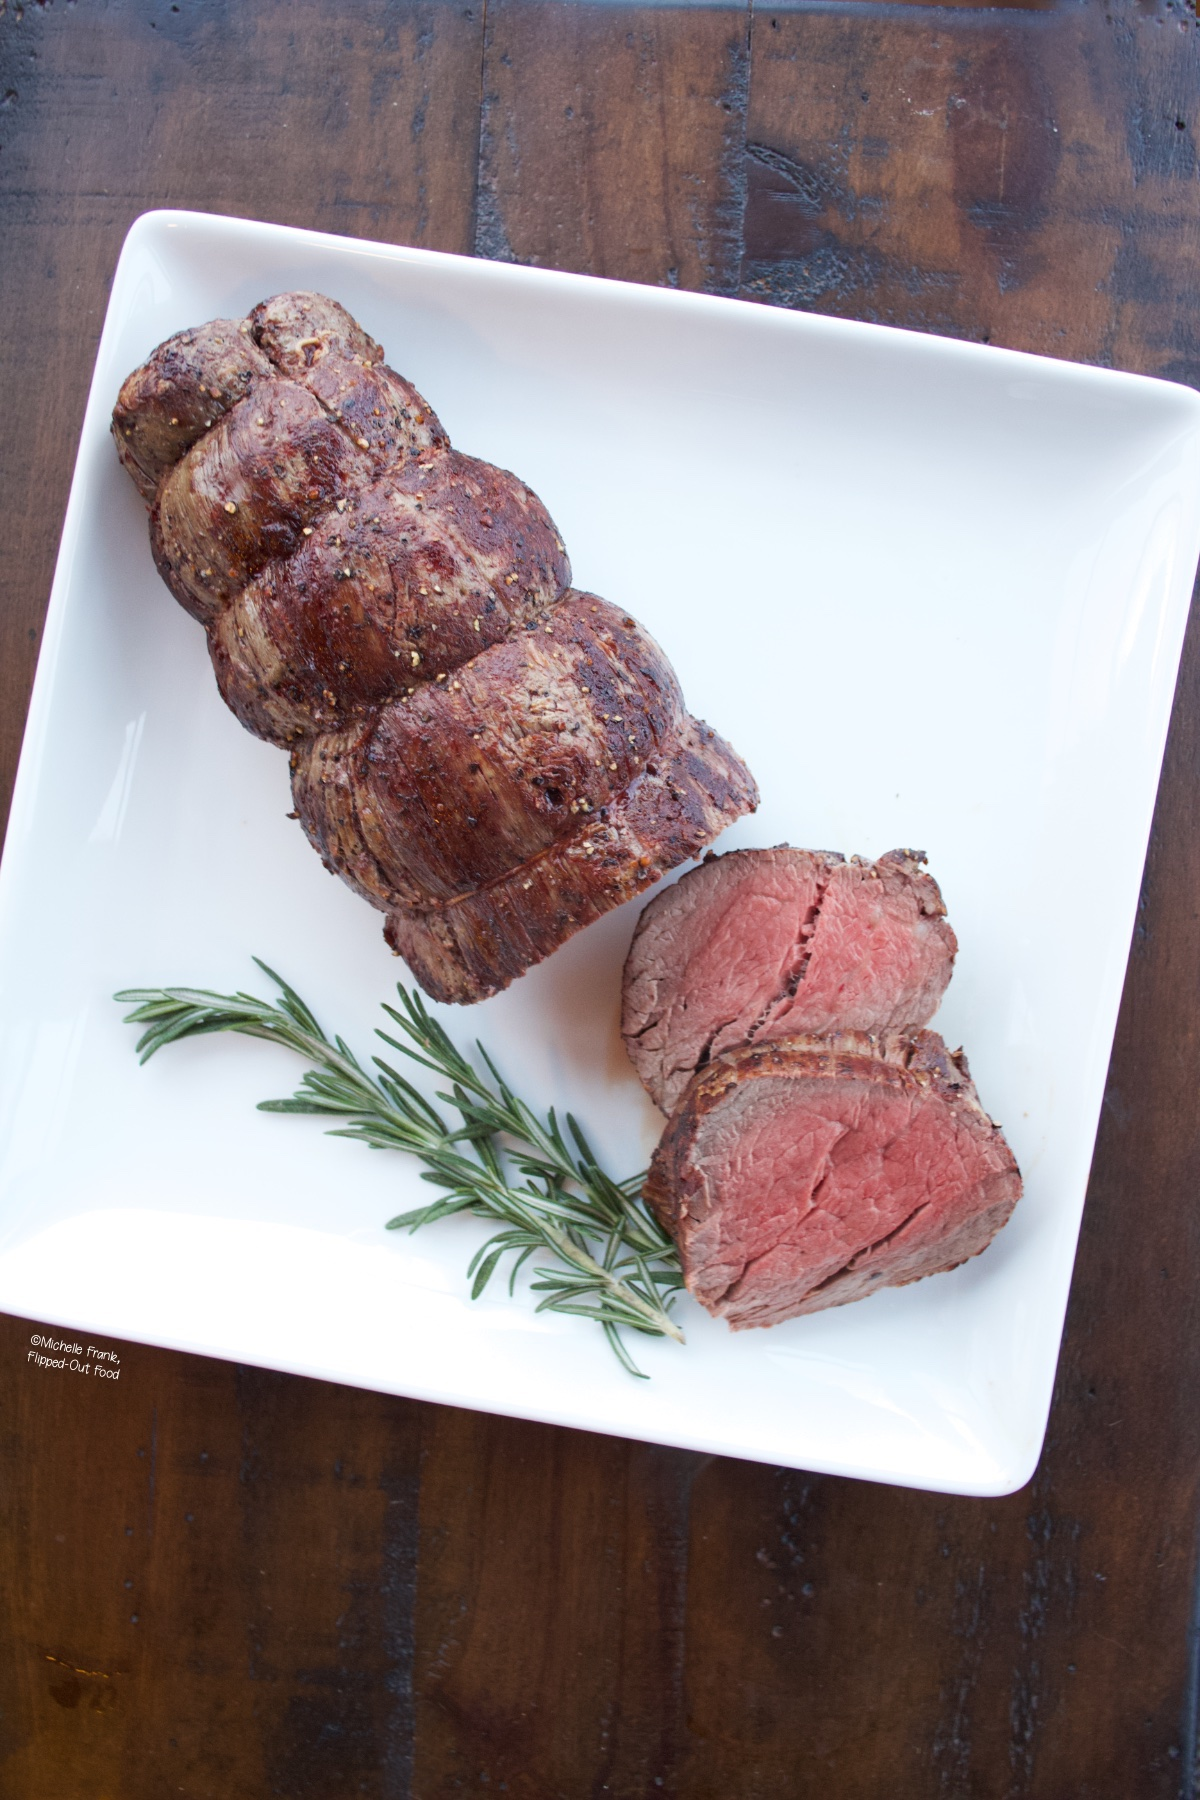 Roast Beef Tenderloin with Green Peppercorn Sauce on a serving platter with two slices cut. The platter is garnished with sprigs of rosemary.